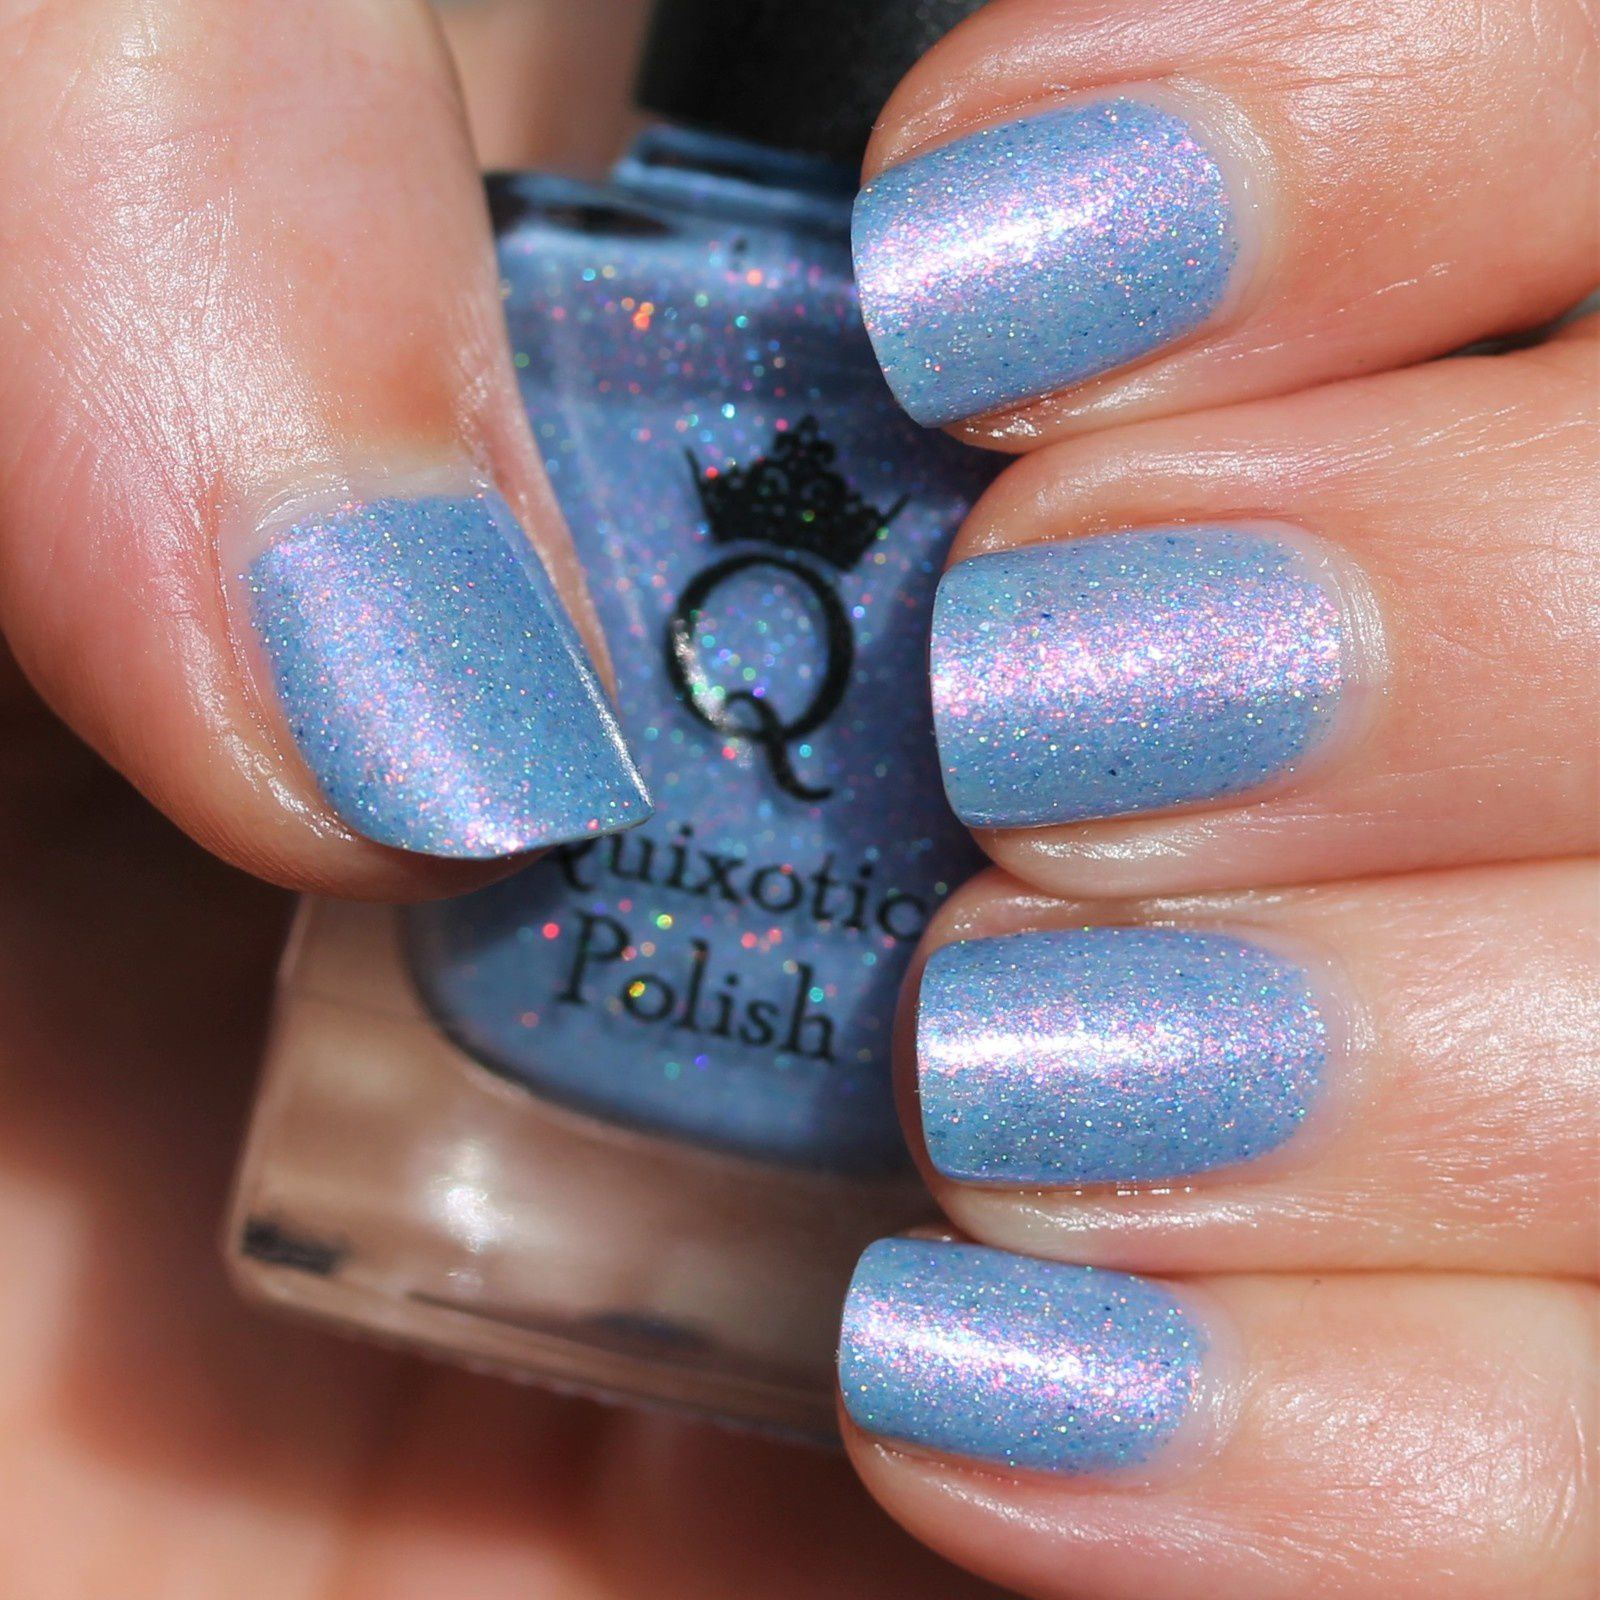 Essie Protein Base Coat / Quixotic Polish Sweet Dreams Are Made of These / Poshe Top Coat